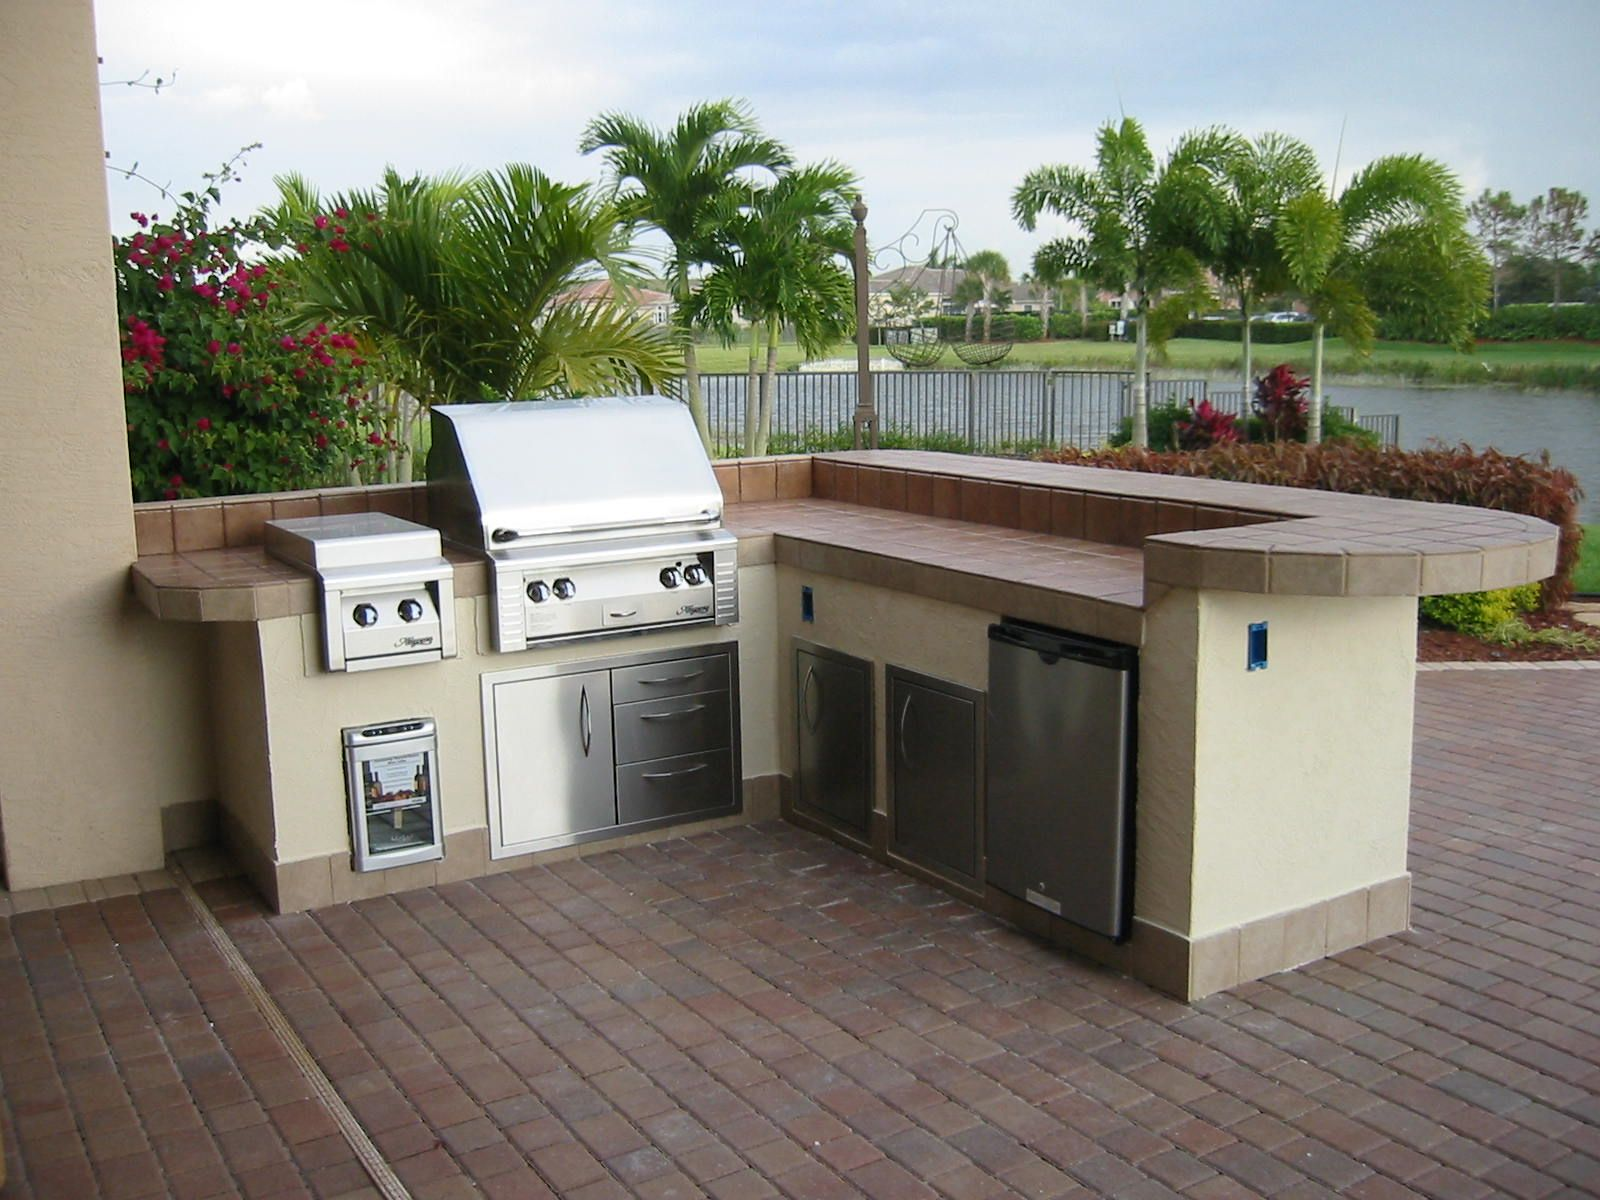 Outdoor Barbecue Kitchen Islands | Built In Grill Islands, Vented Ventless  Gas Log Fireplaces Outdoor